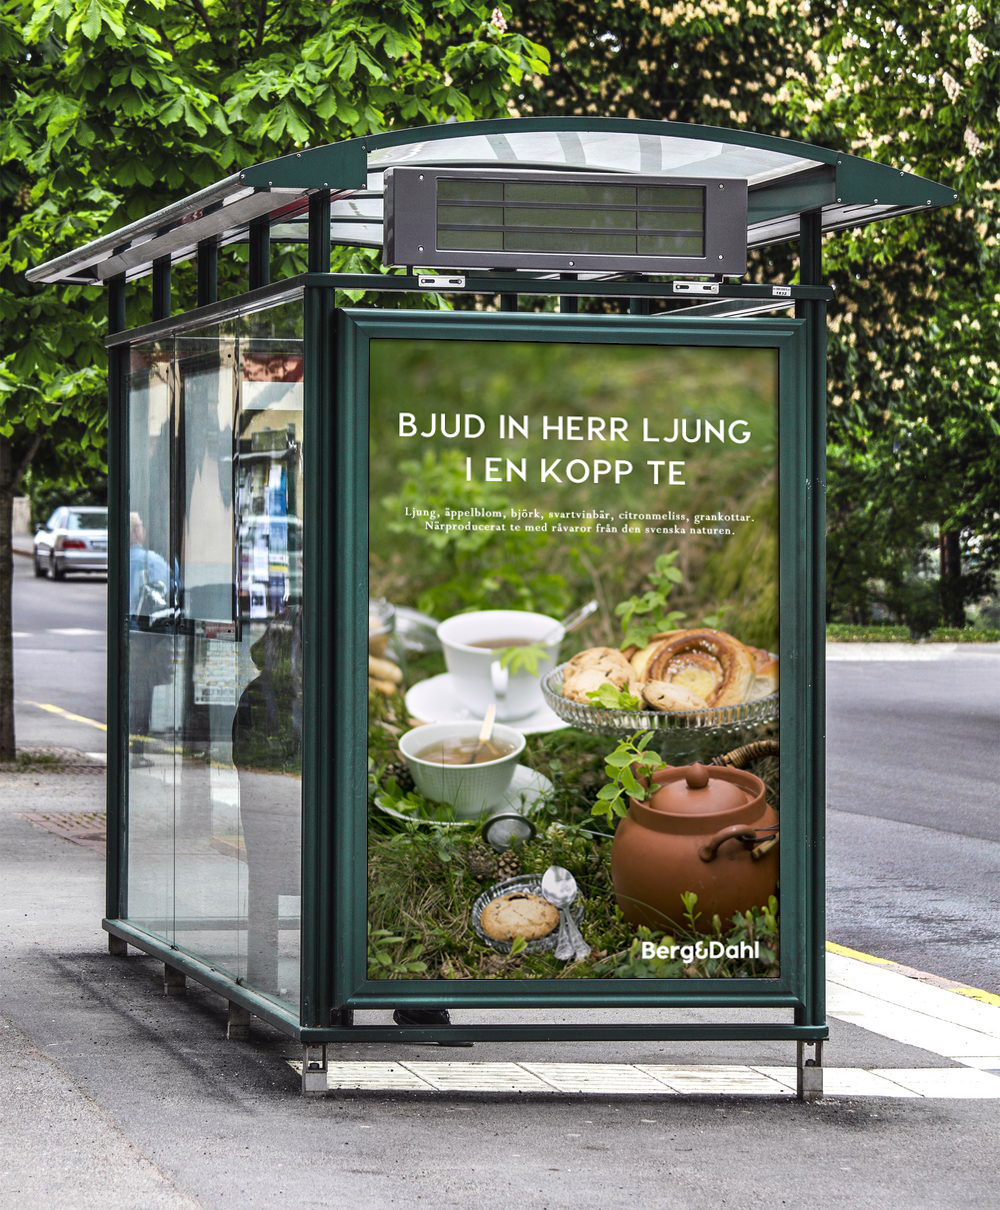 Bus stop with a blank billboard